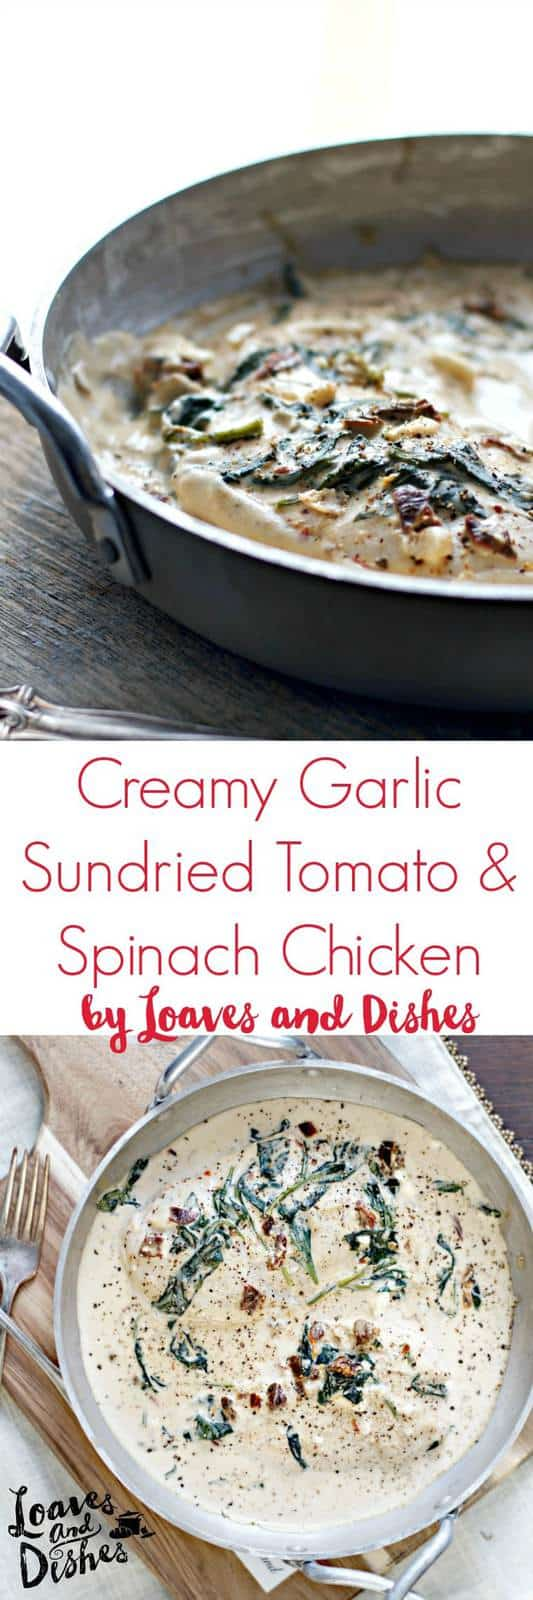 Super Simple Restaurant Quality dish - ready in 30 minutes for family or friends. Super tasty and perfect! Serve over noodles, rice or with potatoes. Low Carb? Try with Broccoli!